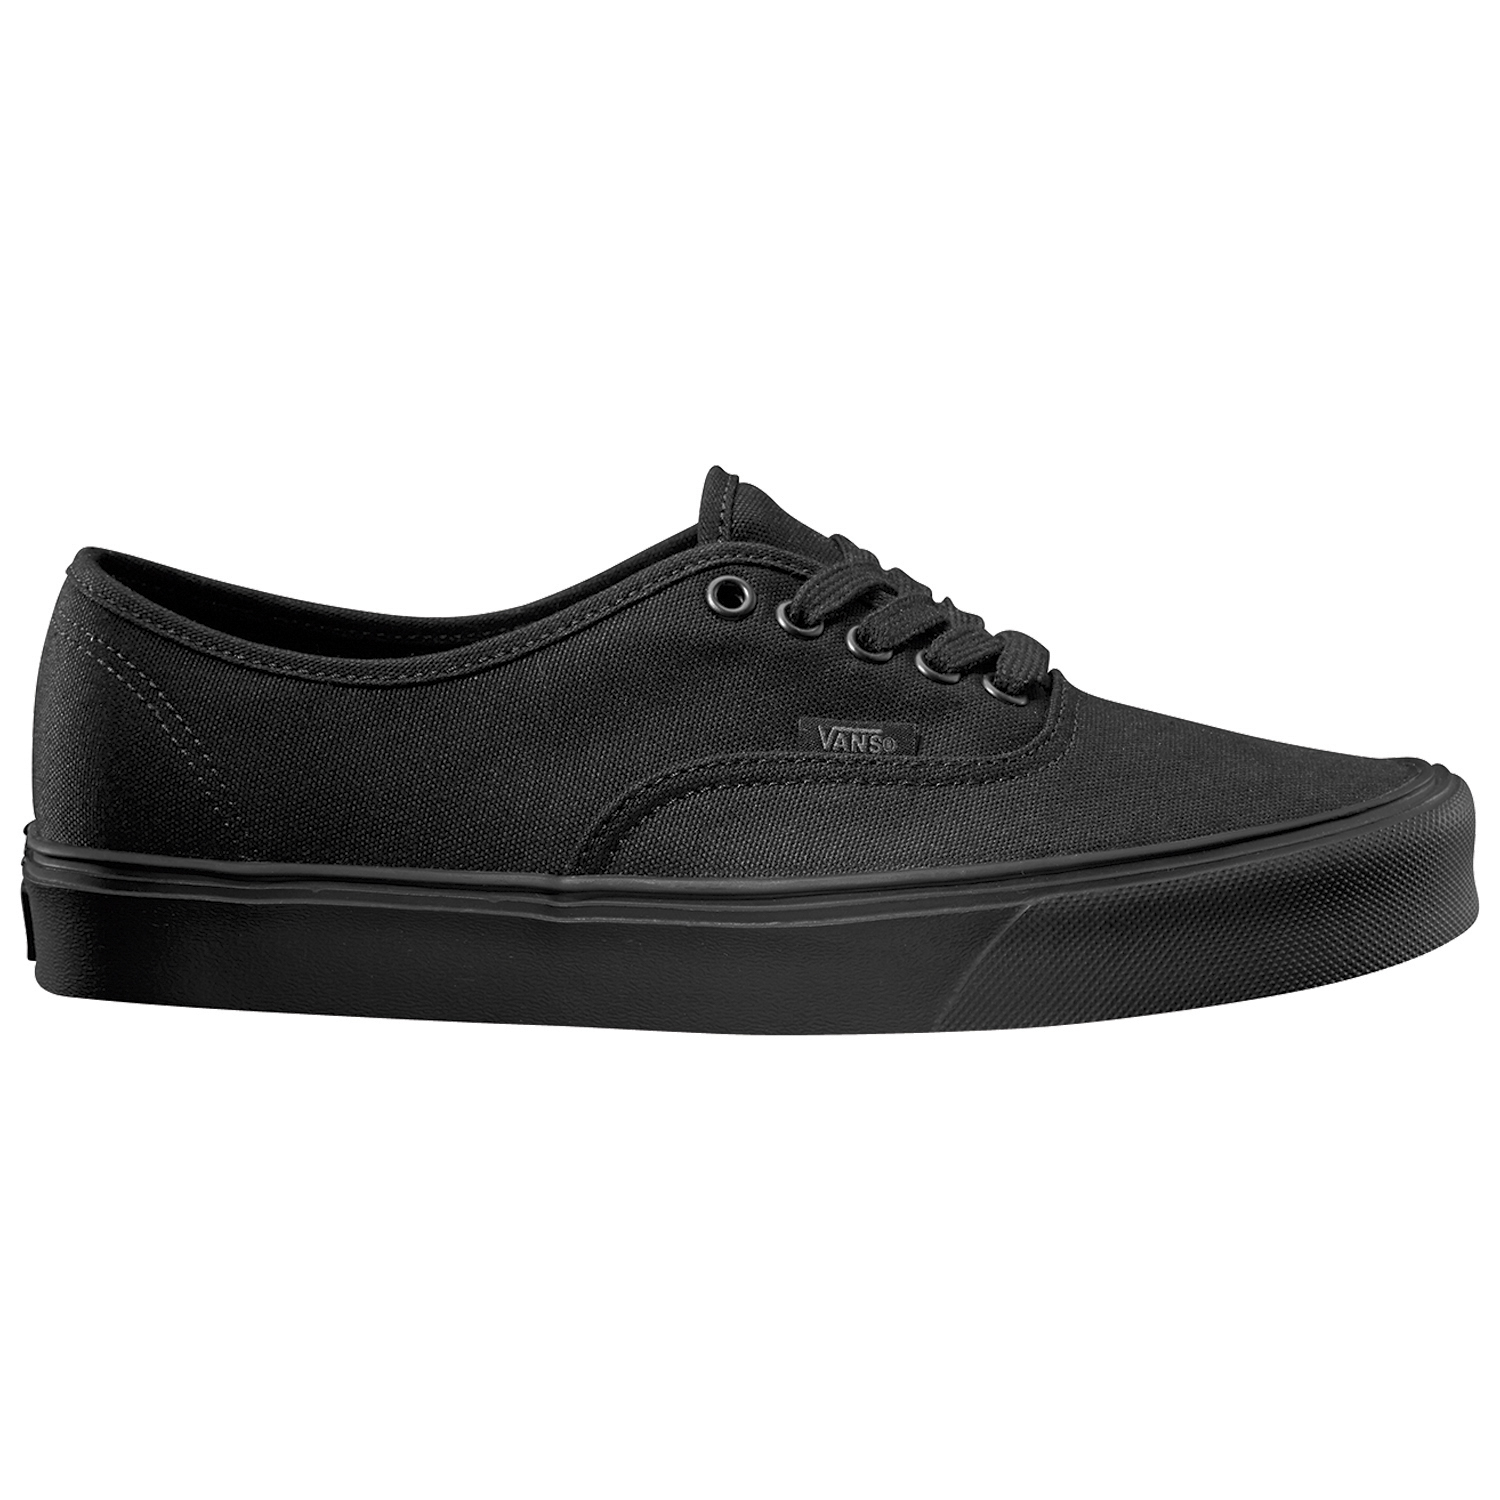 vans-authentic-lite-canvas-black-black-129-90